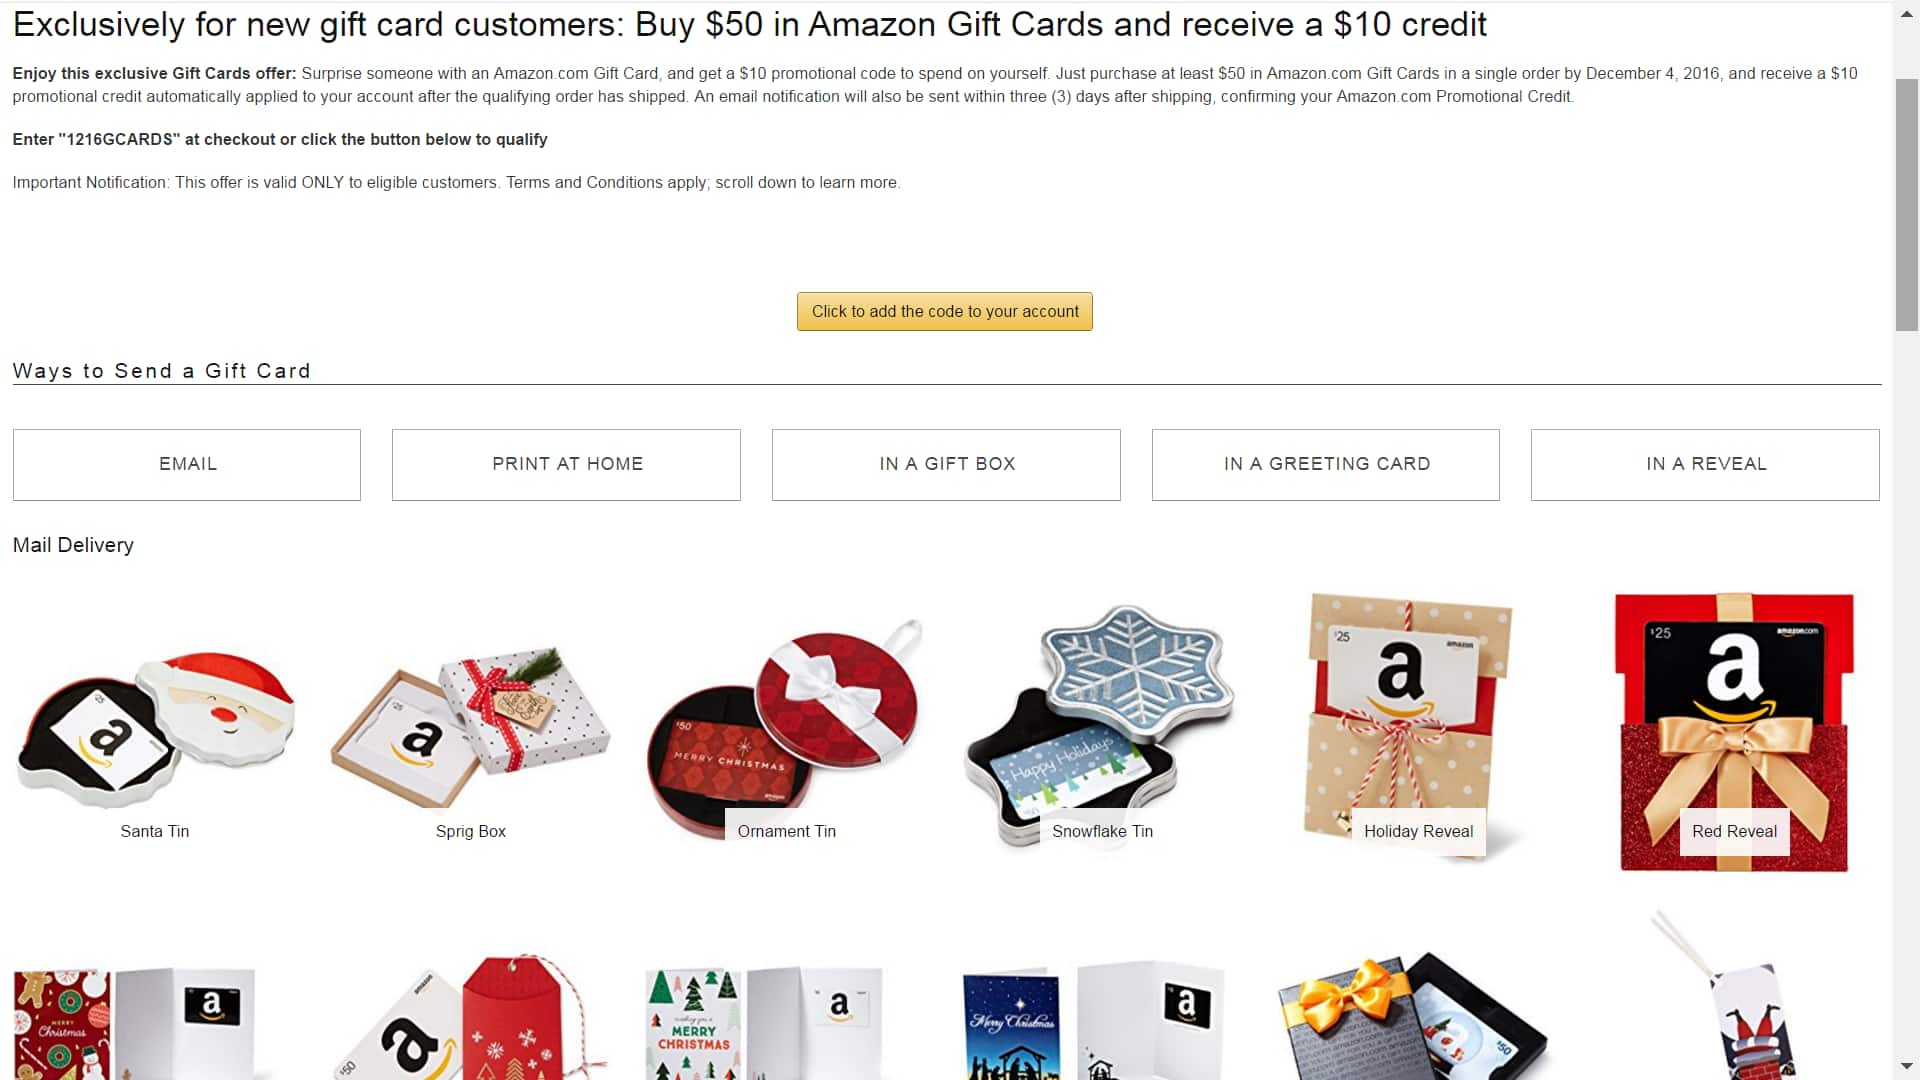 amazon new gift card customers buy 50 in amazon gift cards and receive a 10 credit page 8. Black Bedroom Furniture Sets. Home Design Ideas